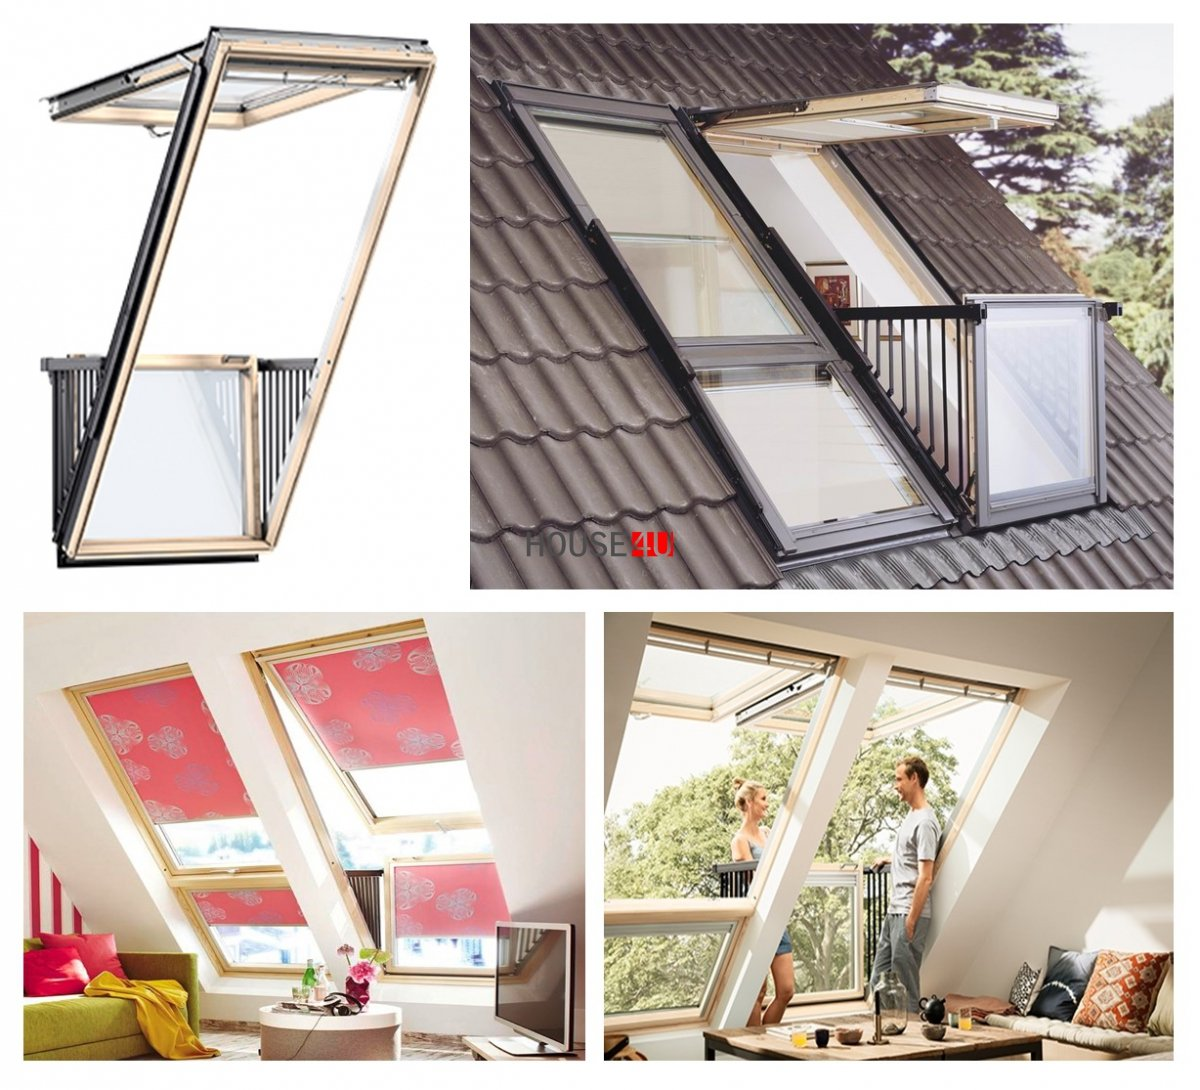 velux gdl cabrio 3066 holz kiefer holz klar lackiert energie plus velux balkonfenster. Black Bedroom Furniture Sets. Home Design Ideas